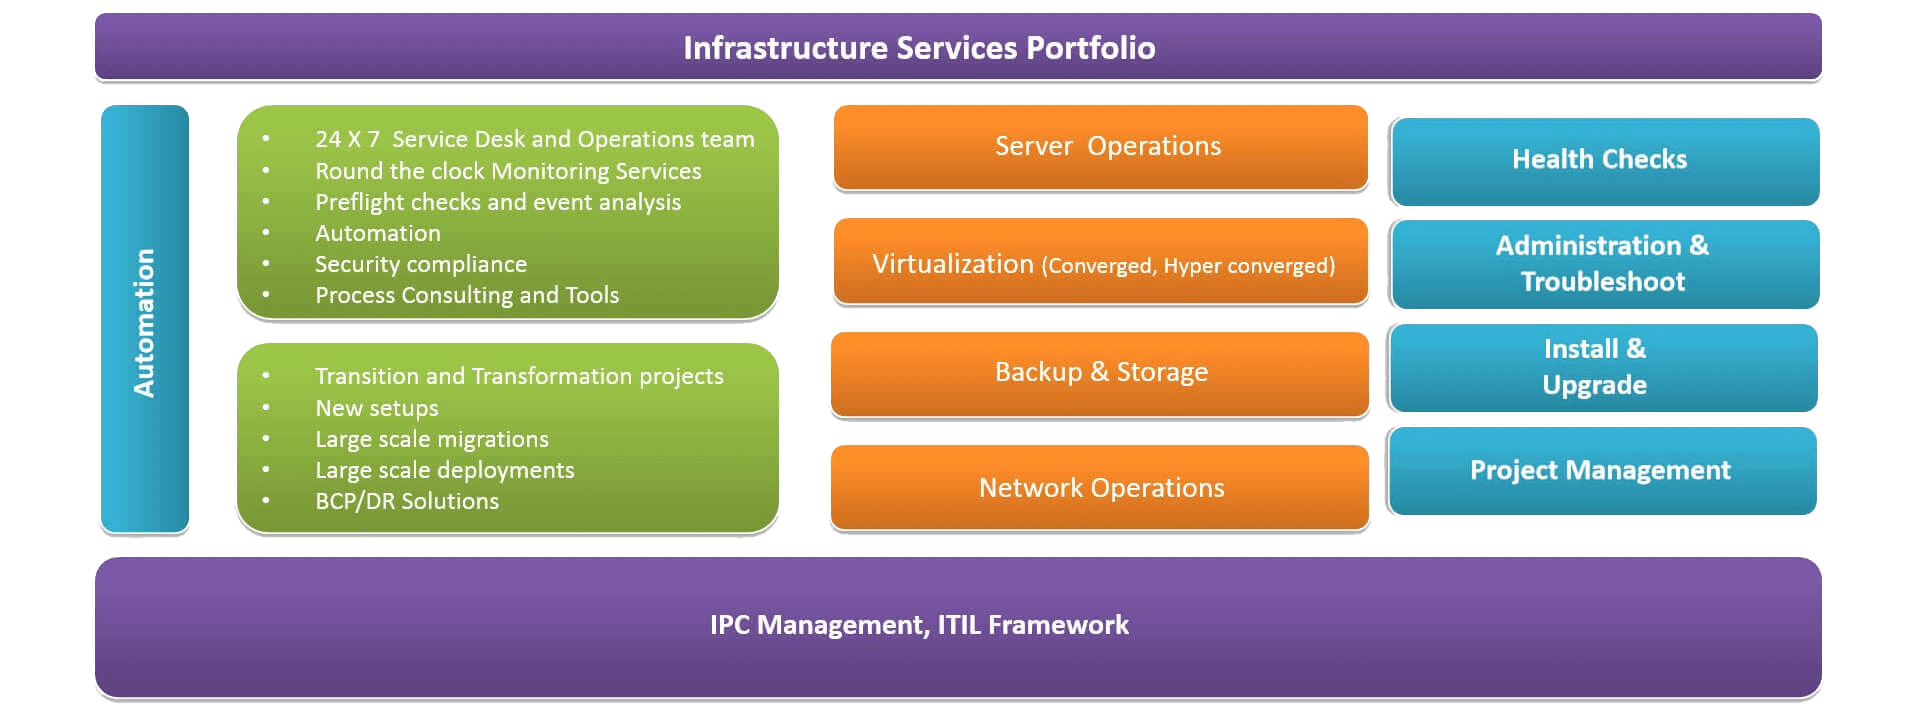 manageinfrastructure